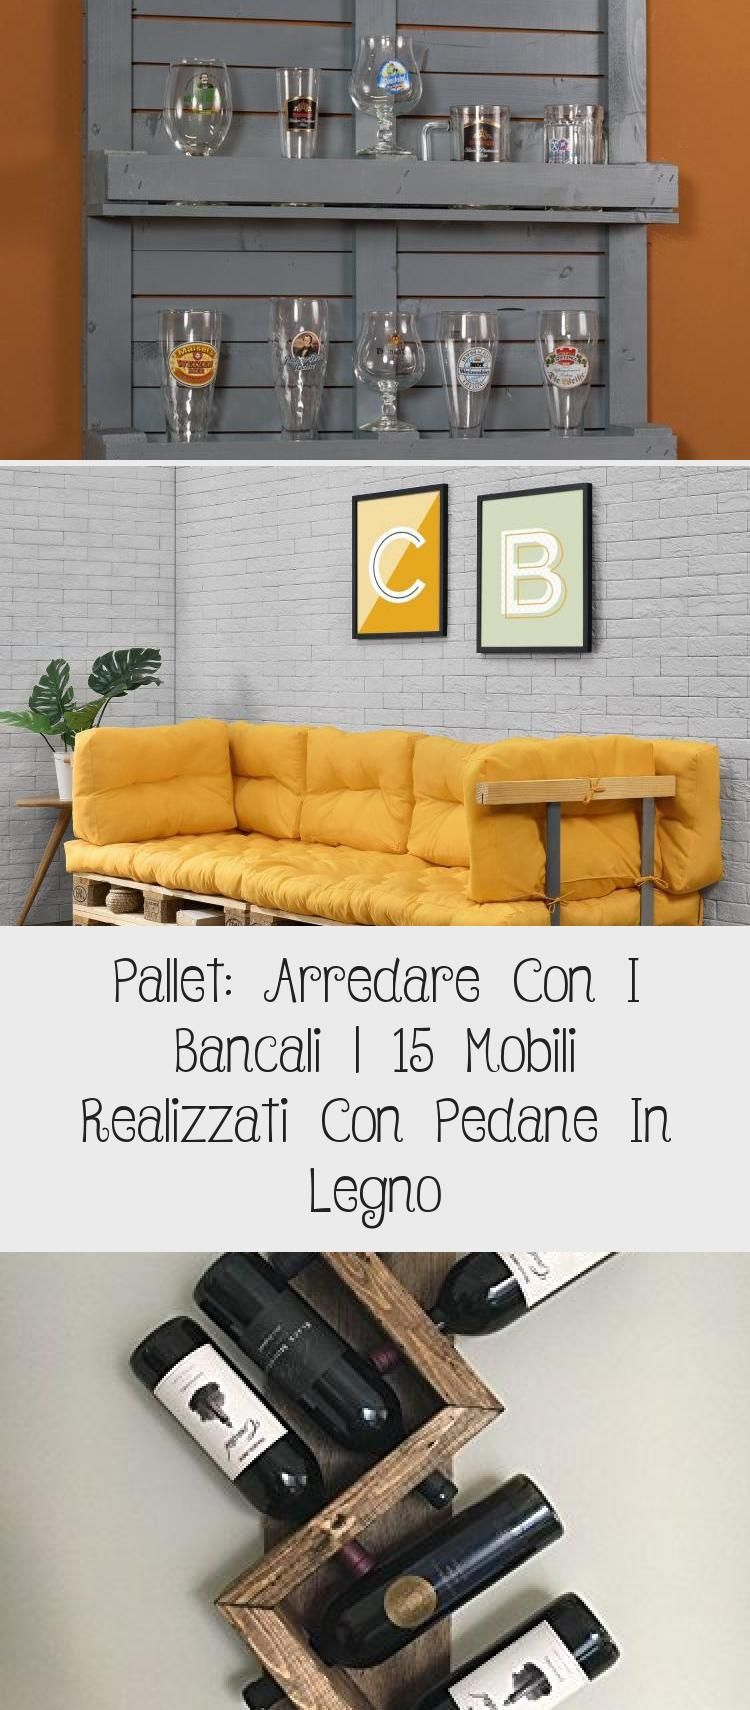 Pallet: Furnishing With Pallets | 15 Furniture Made With Pe …